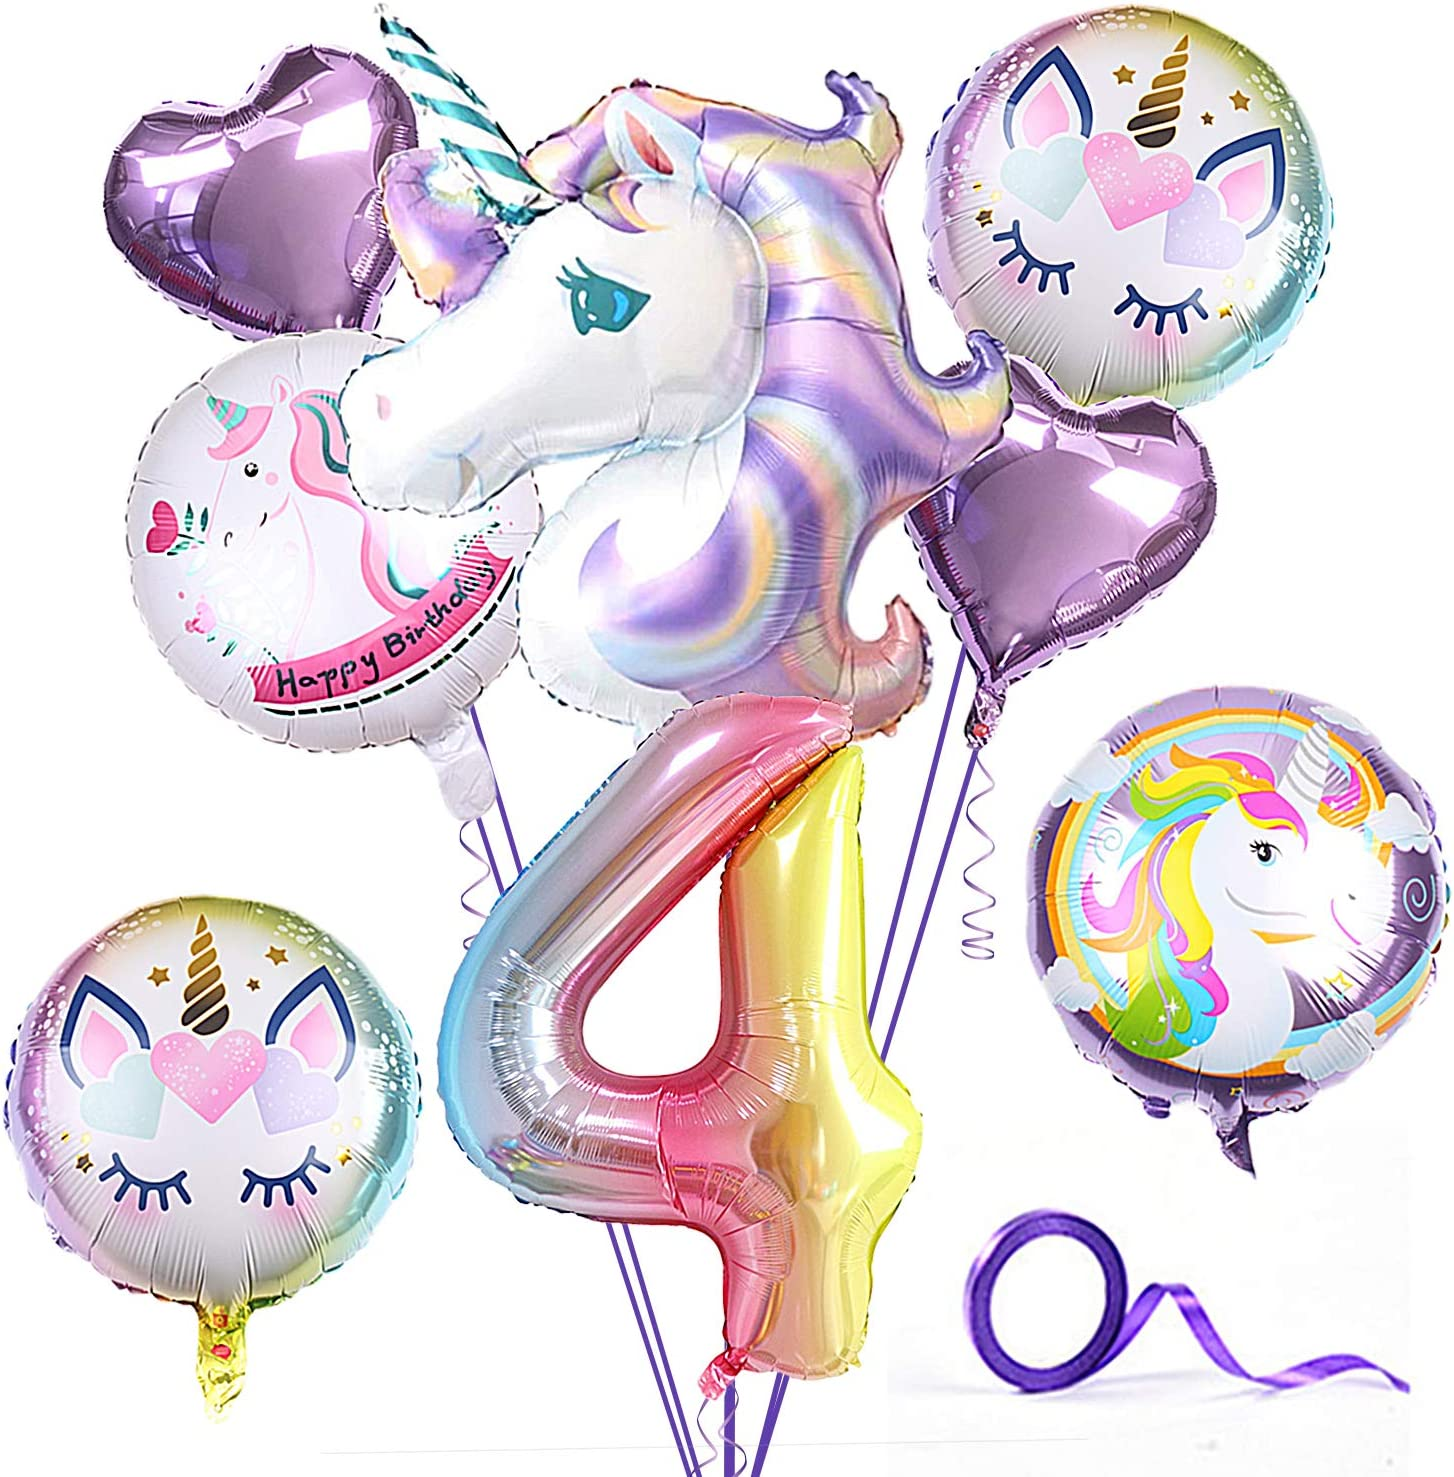 Unicorn Party Birthday Supplies for Kid,Pack of 9 Unicorn Theme purple Balloon for Party,1-5th Birthday Party Decorations,Home Office Decor,gift for baby (4 Years)